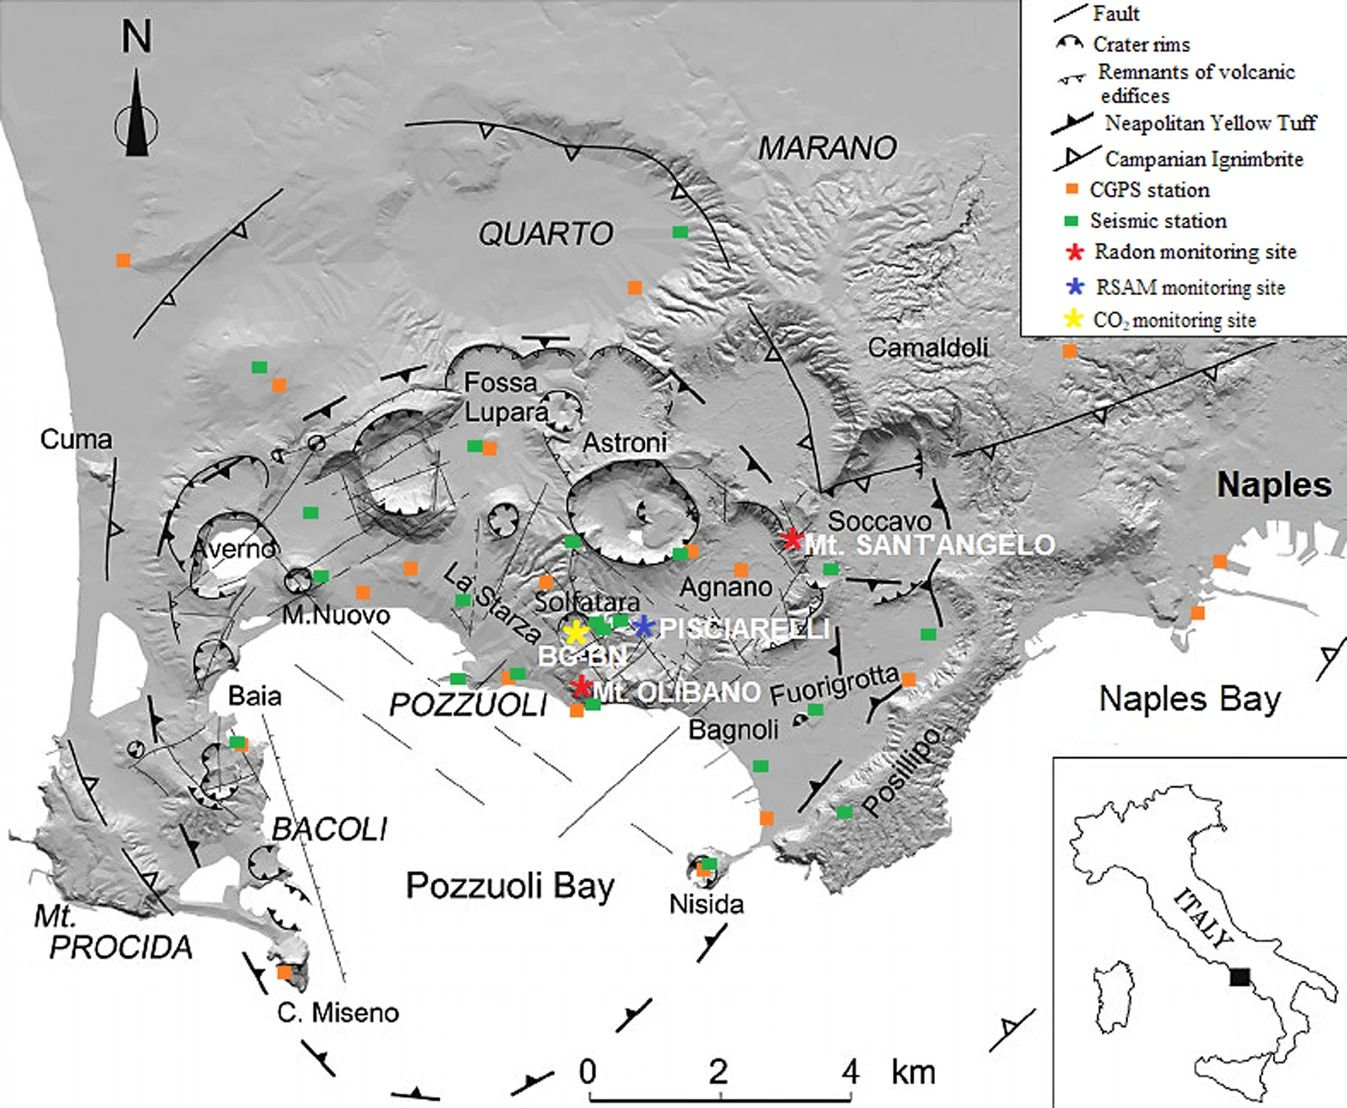 Map of the Campi Flegrei caldera (Naples-Italy). The map, modified after 16 (10.1016 / j.apradiso.2020.109140) using PAINT (Microsoft Corporation, version: 6.1907.18017.0), shows the structural framework of the caldera characterized by tectonics and volcano-tectonic activity . The two radon monitoring sites of Monte Olibano and Monte Sant'Angelo, and the other monitoring sites for geochemical and geophysical parameters are reported. The squares represent the Campi Flegrei seismic network in green and the NeVoCGPS network in orange